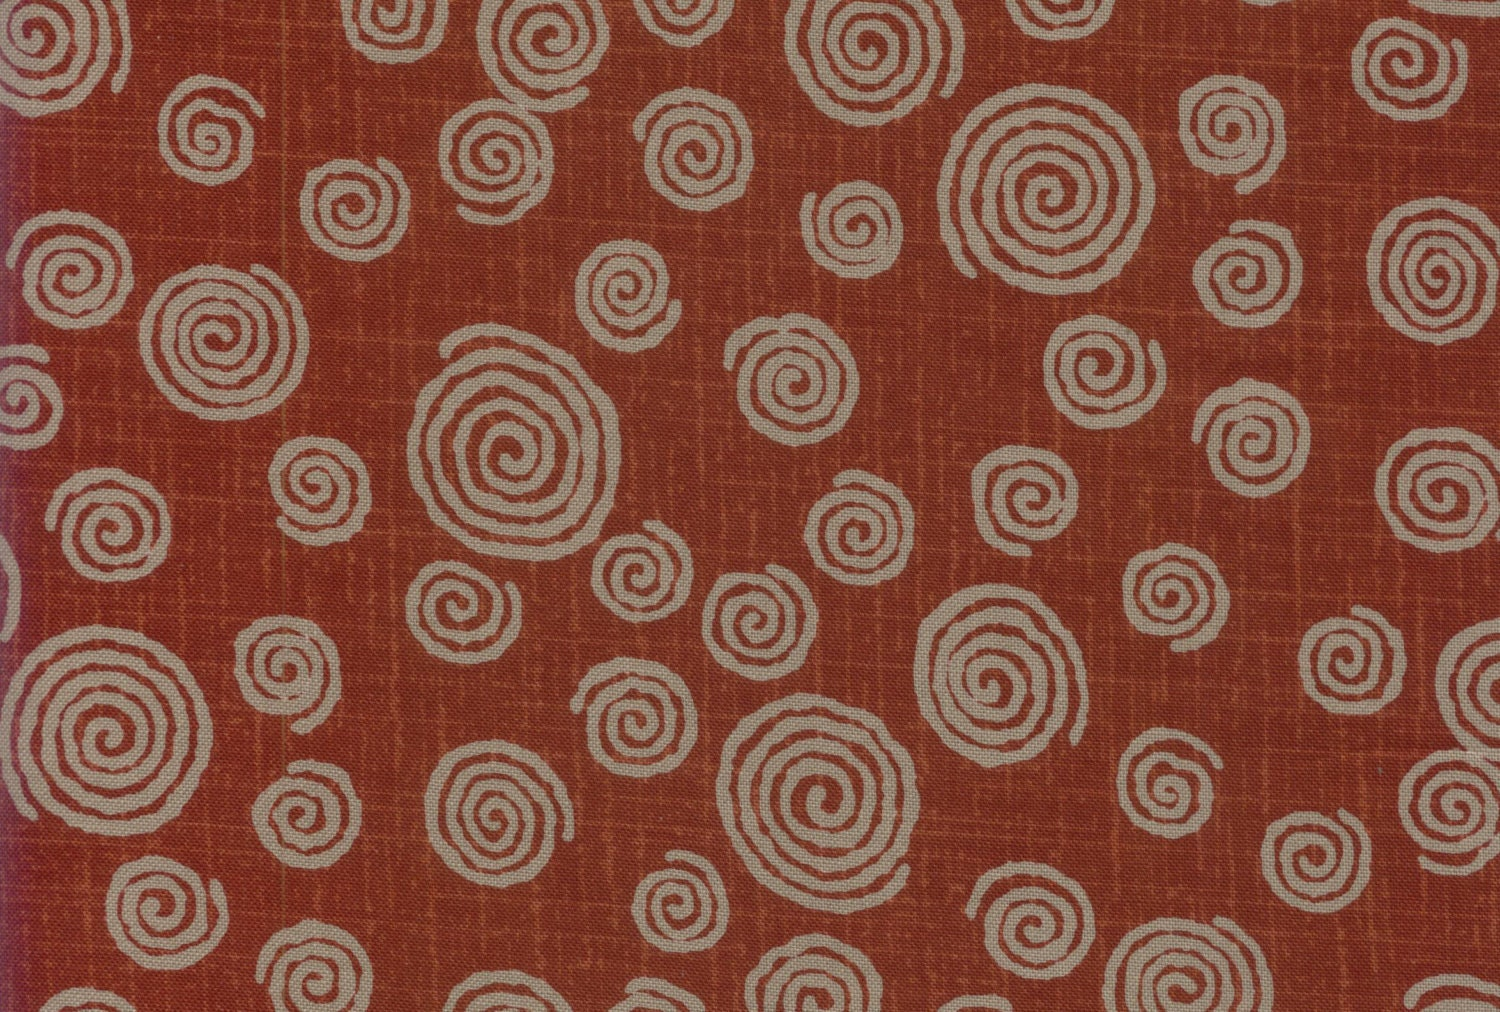 Red Swirl Fabric Japanese Quilting Cotton Fabric By Half Yard